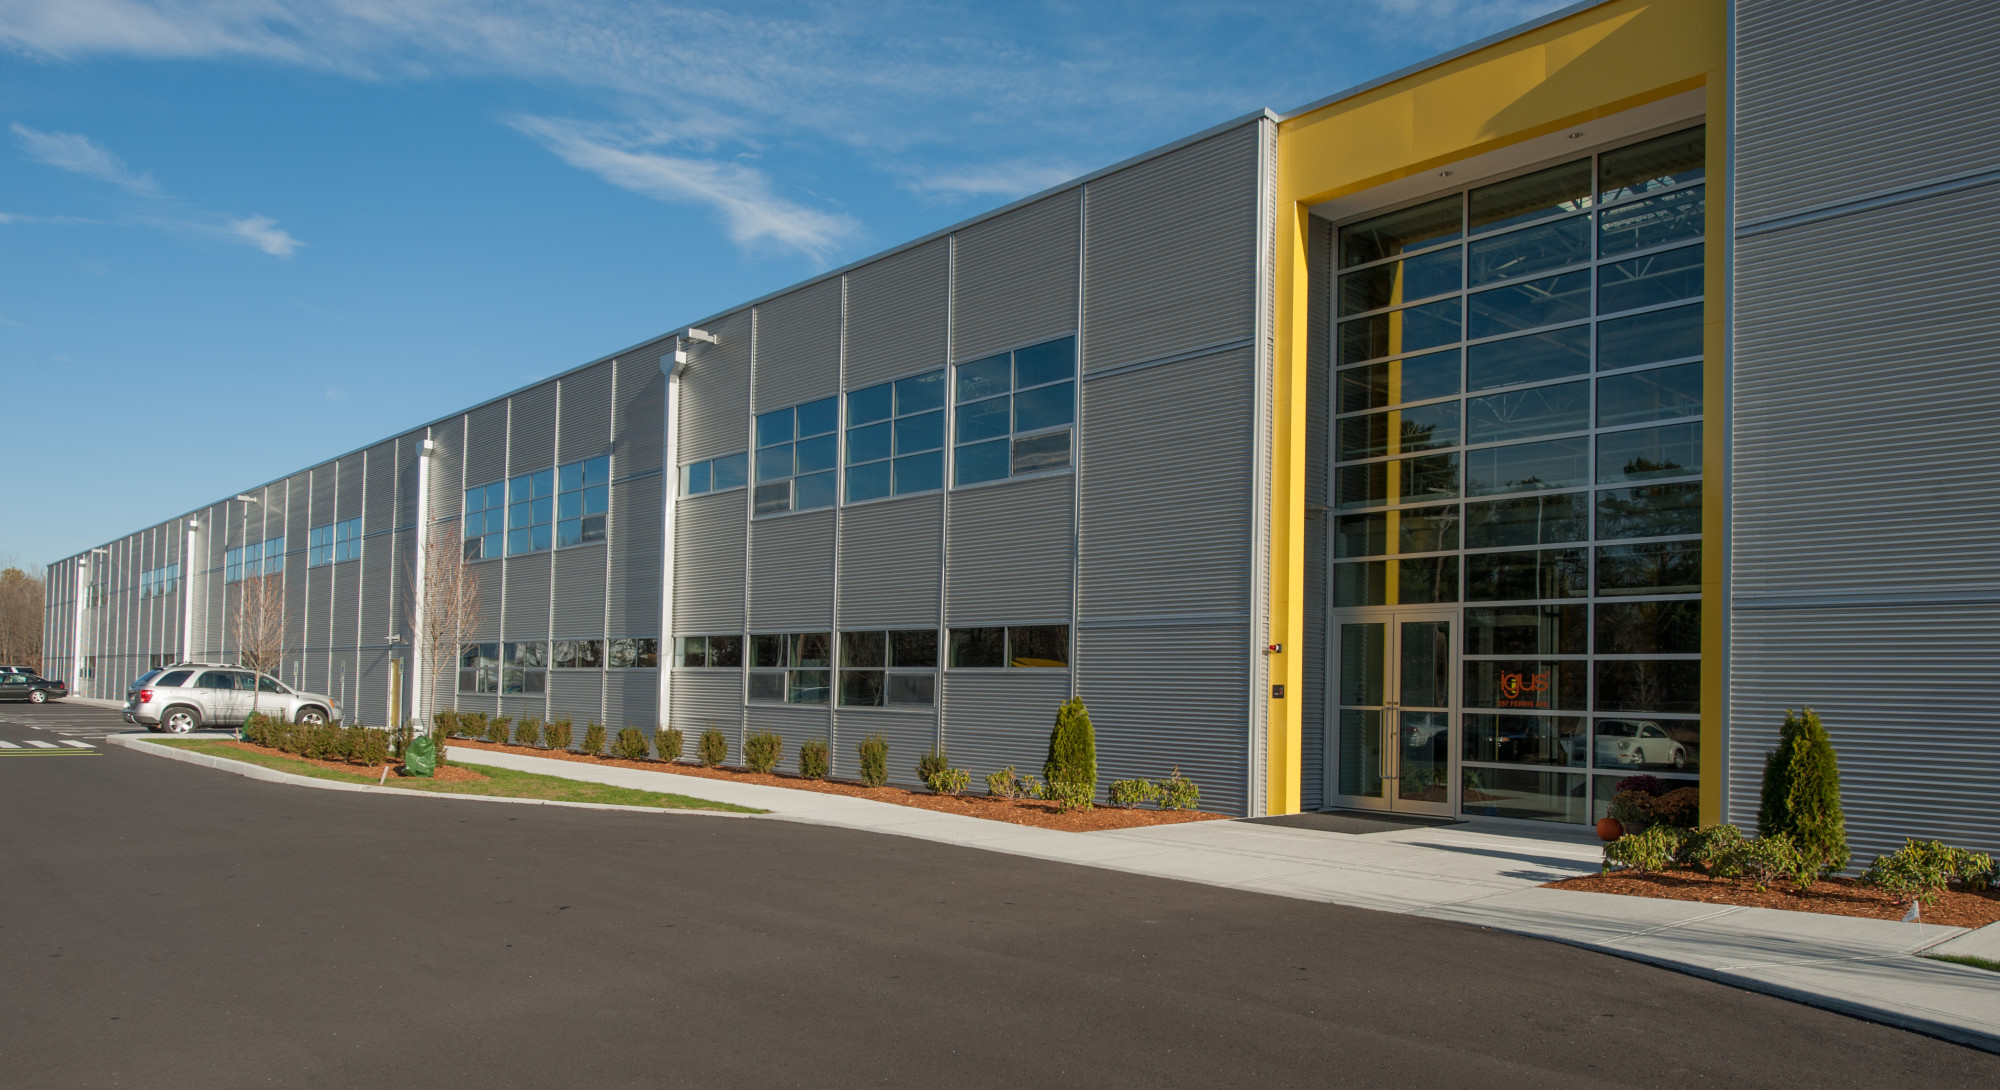 Igus Headquarters And Distribution Facility Canam Buildings